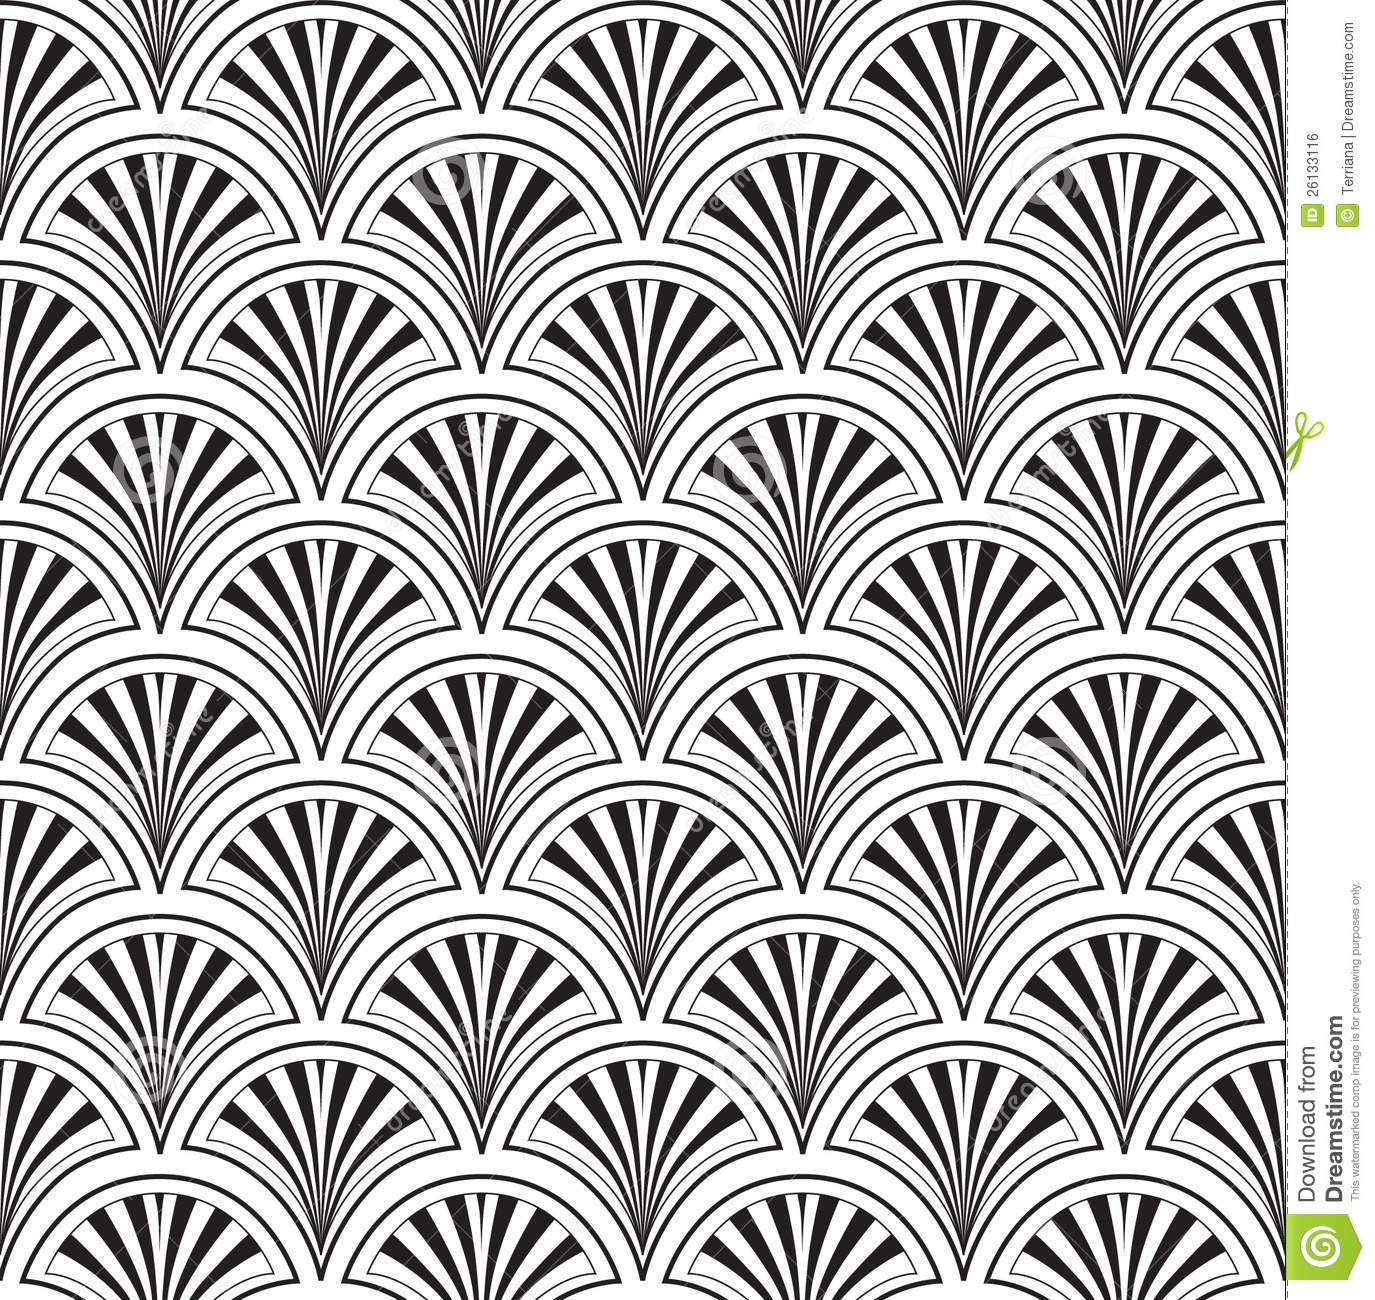 Black And White Victorian Wallpaper Seamless Texture With Floral Ornament Royalty Free Stock